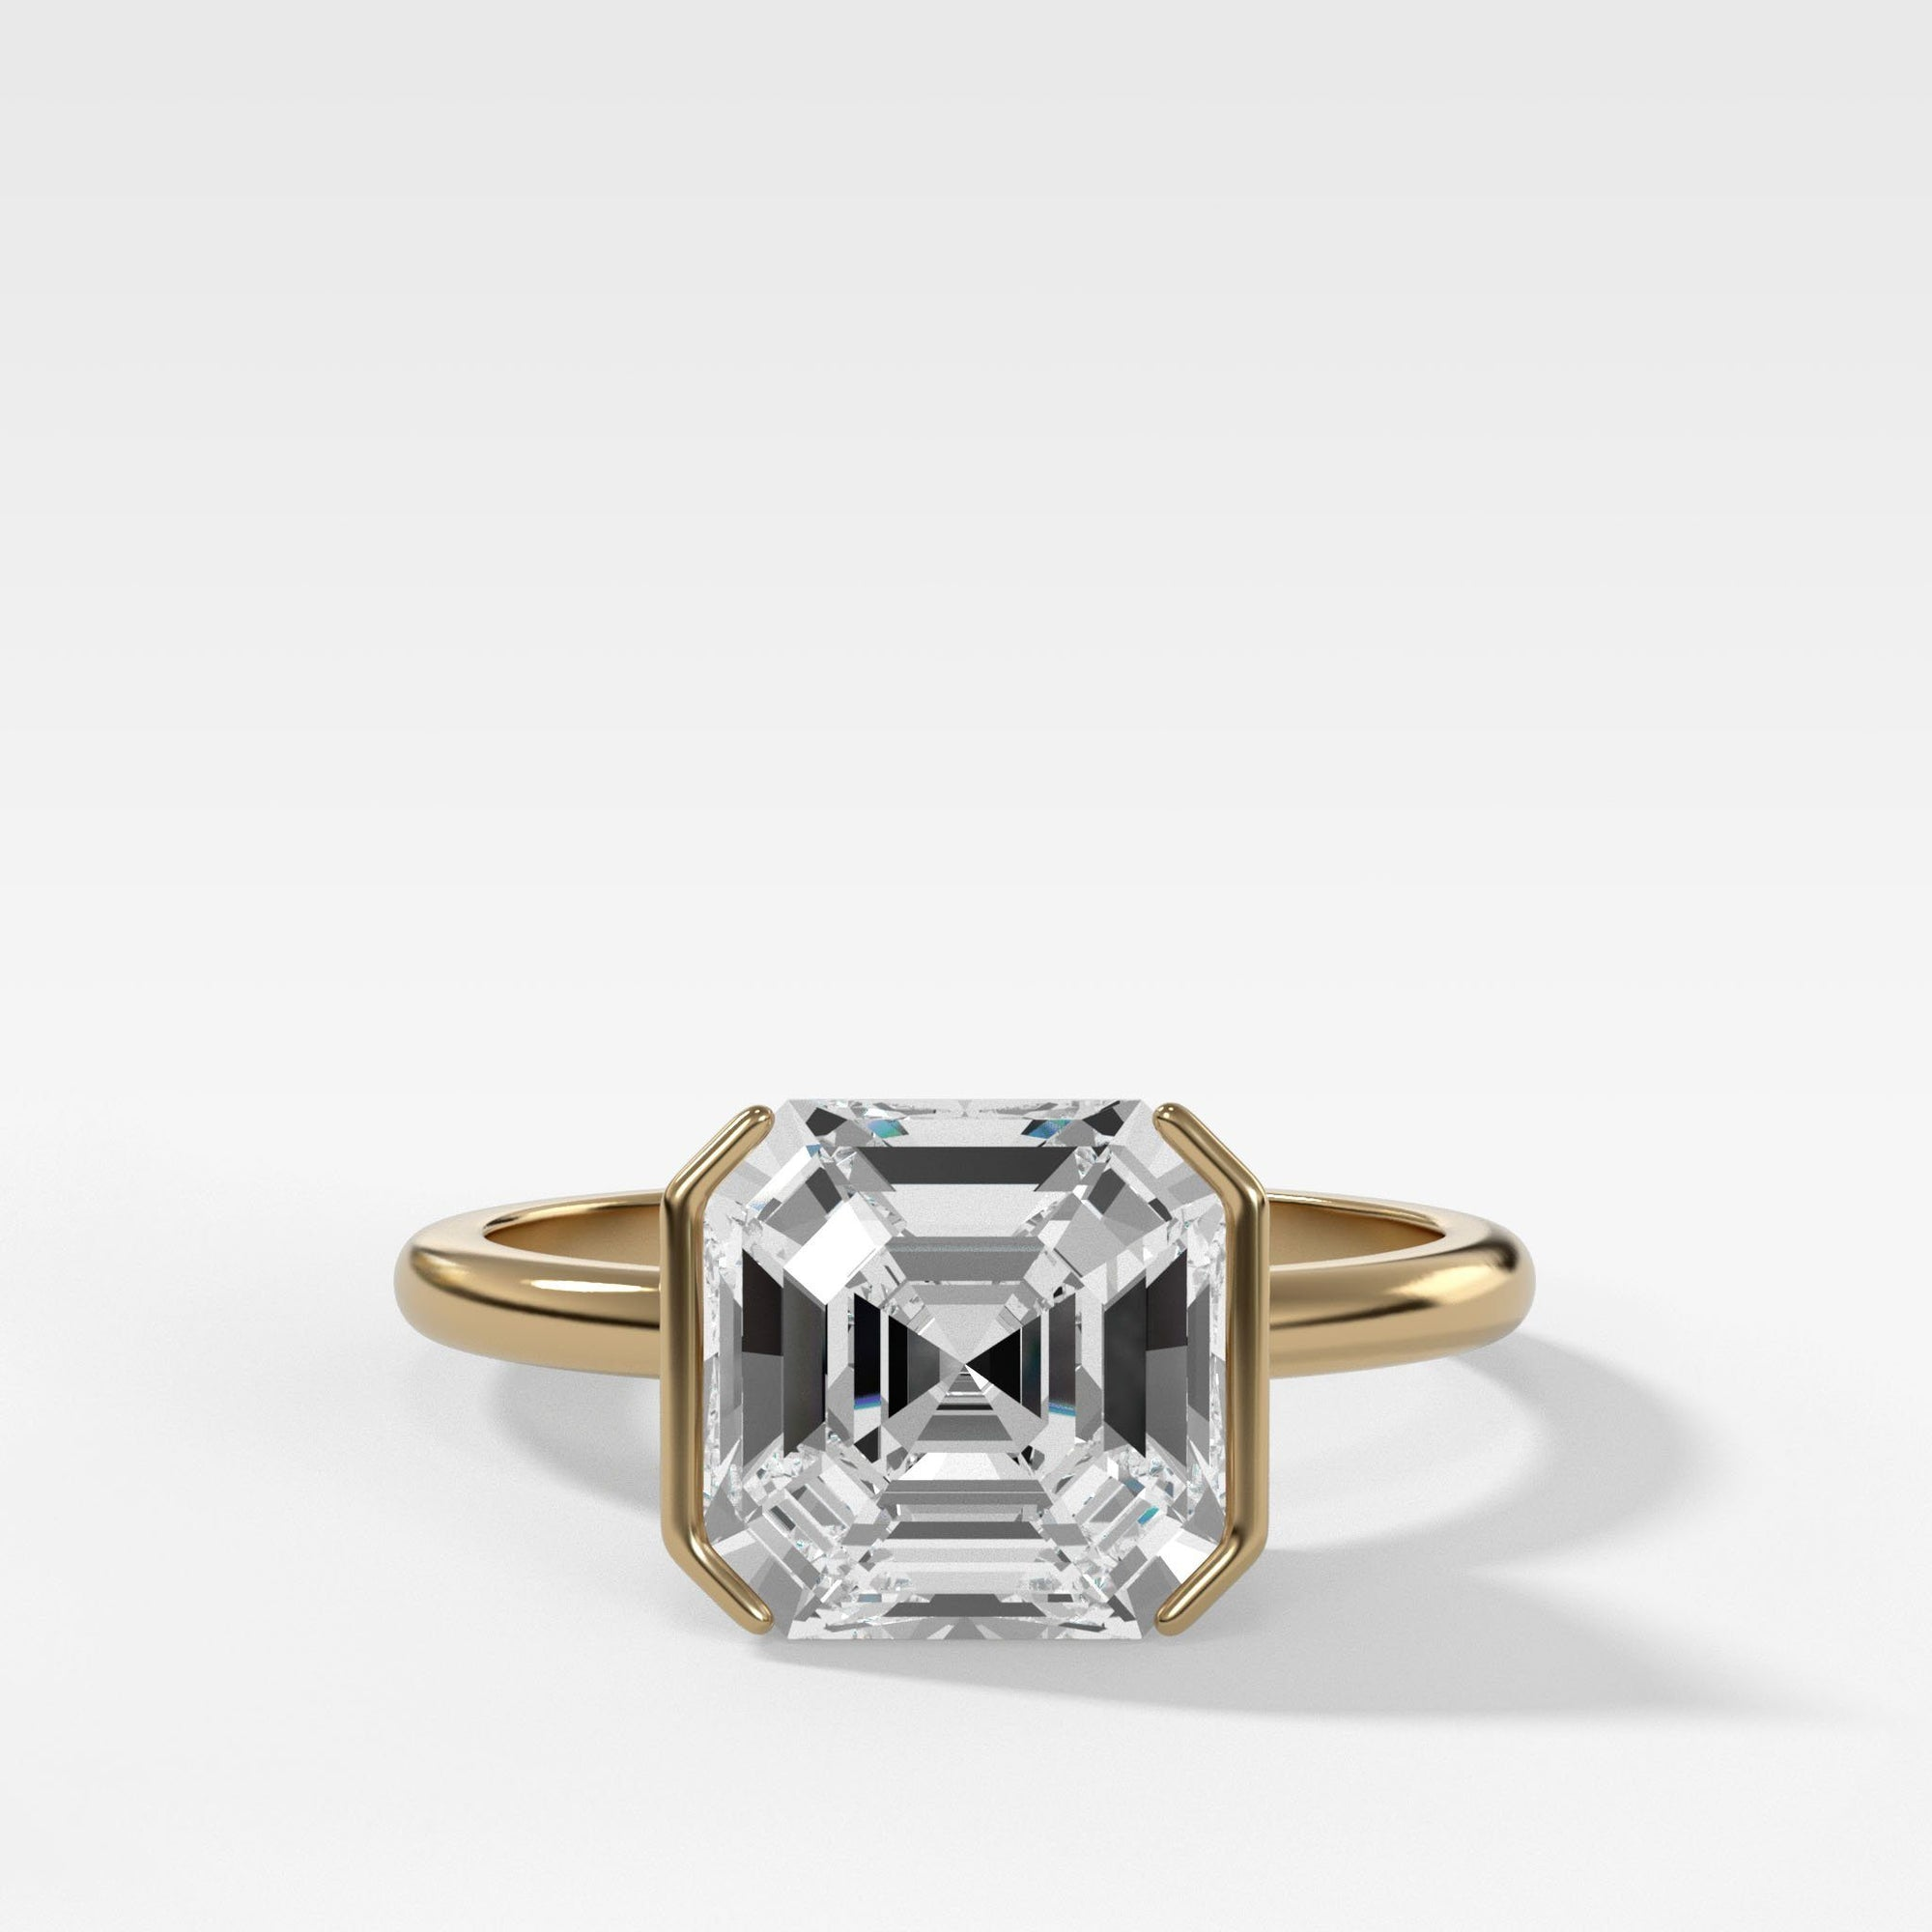 Half Bezel Solitaire Engagement Ring With Asscher Cut In Yellow Gold By Good Stone